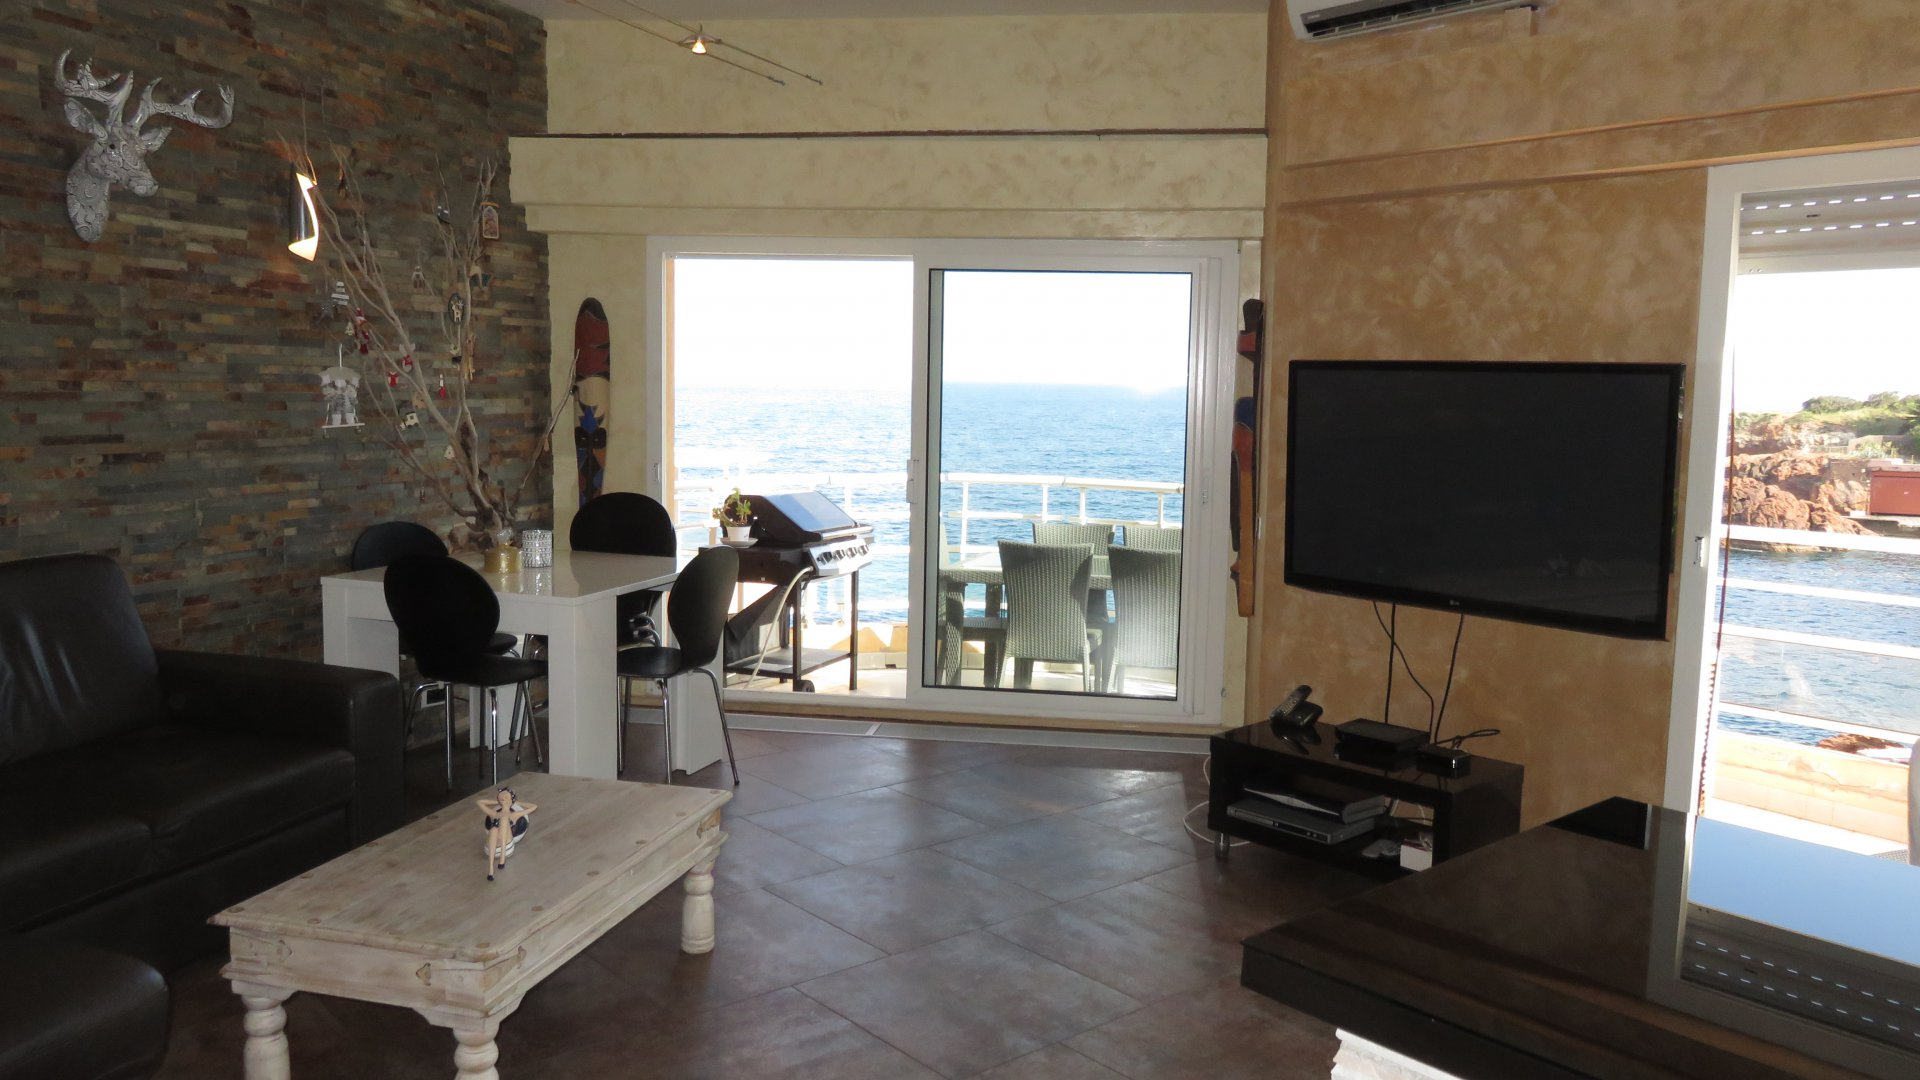 3 bedroom apartment 75 m² sea view dream!